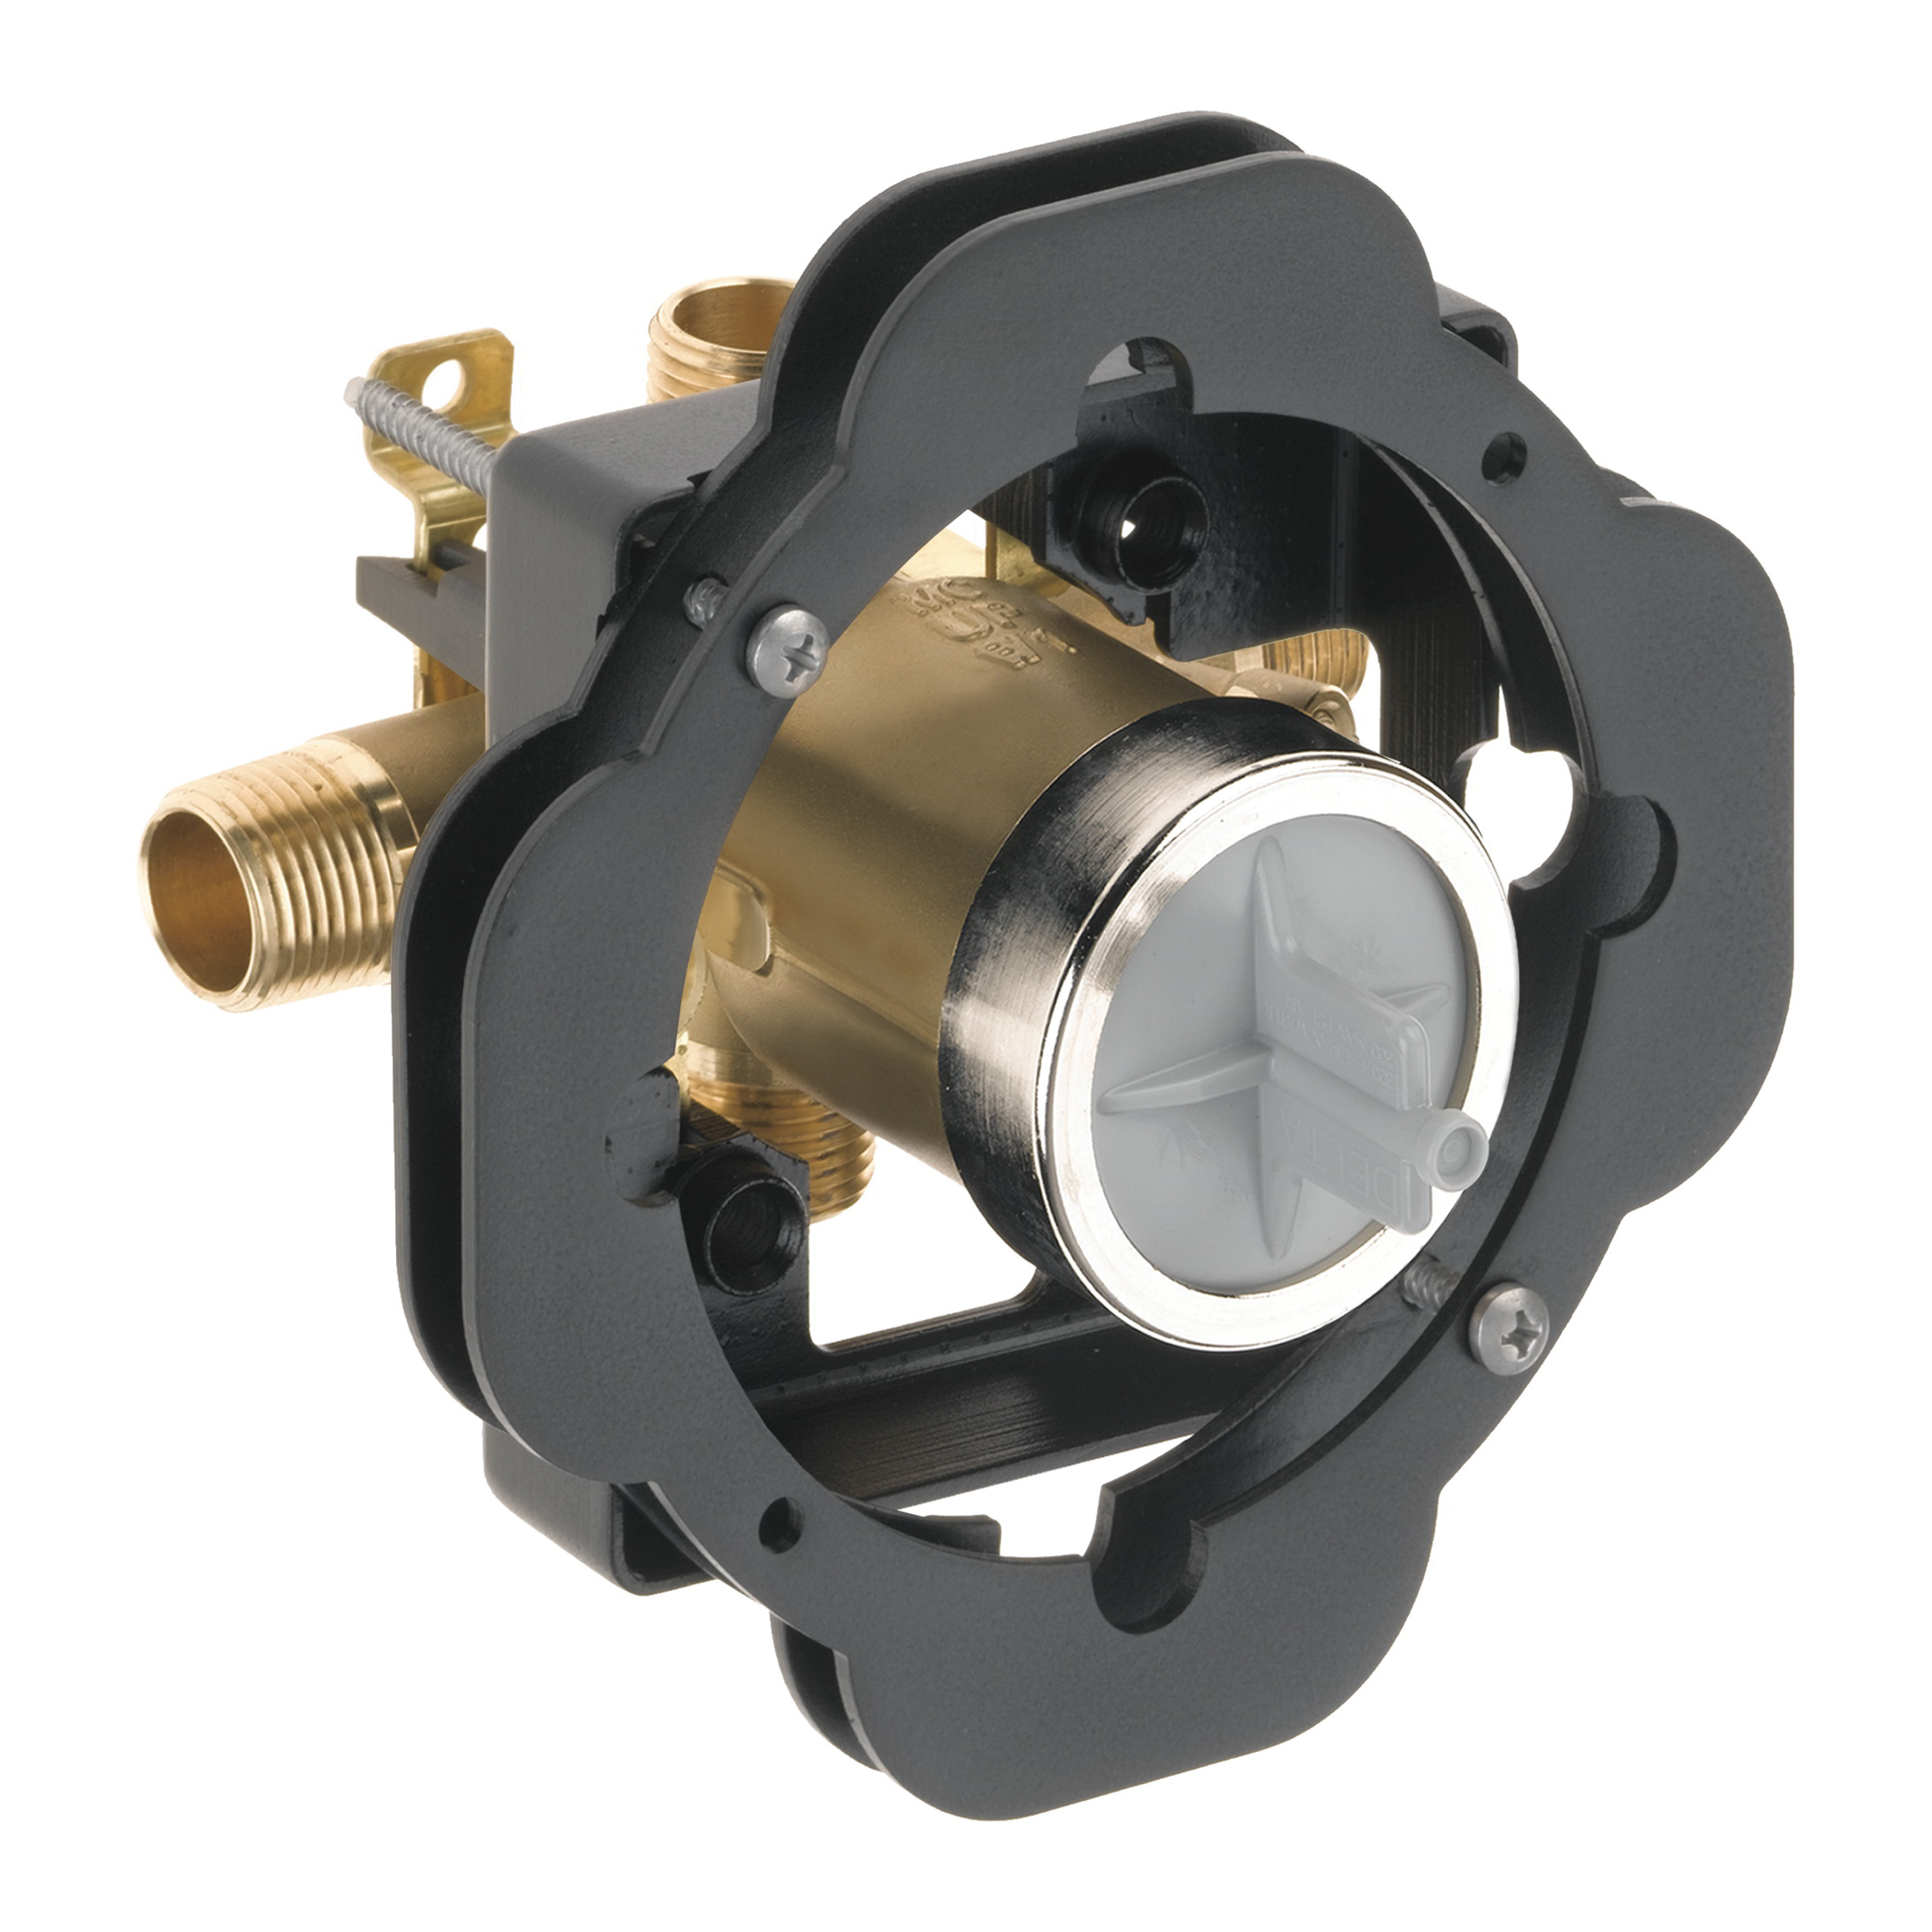 DELTA® R10000-UNWSBXT Universal Tub and Shower Valve Body, MultiChoice®, 1/2 in Universal Inlet/Outlet, For Use With: MultiChoice® Universal Single or Dual Function Trim, Forged Brass, Domestic